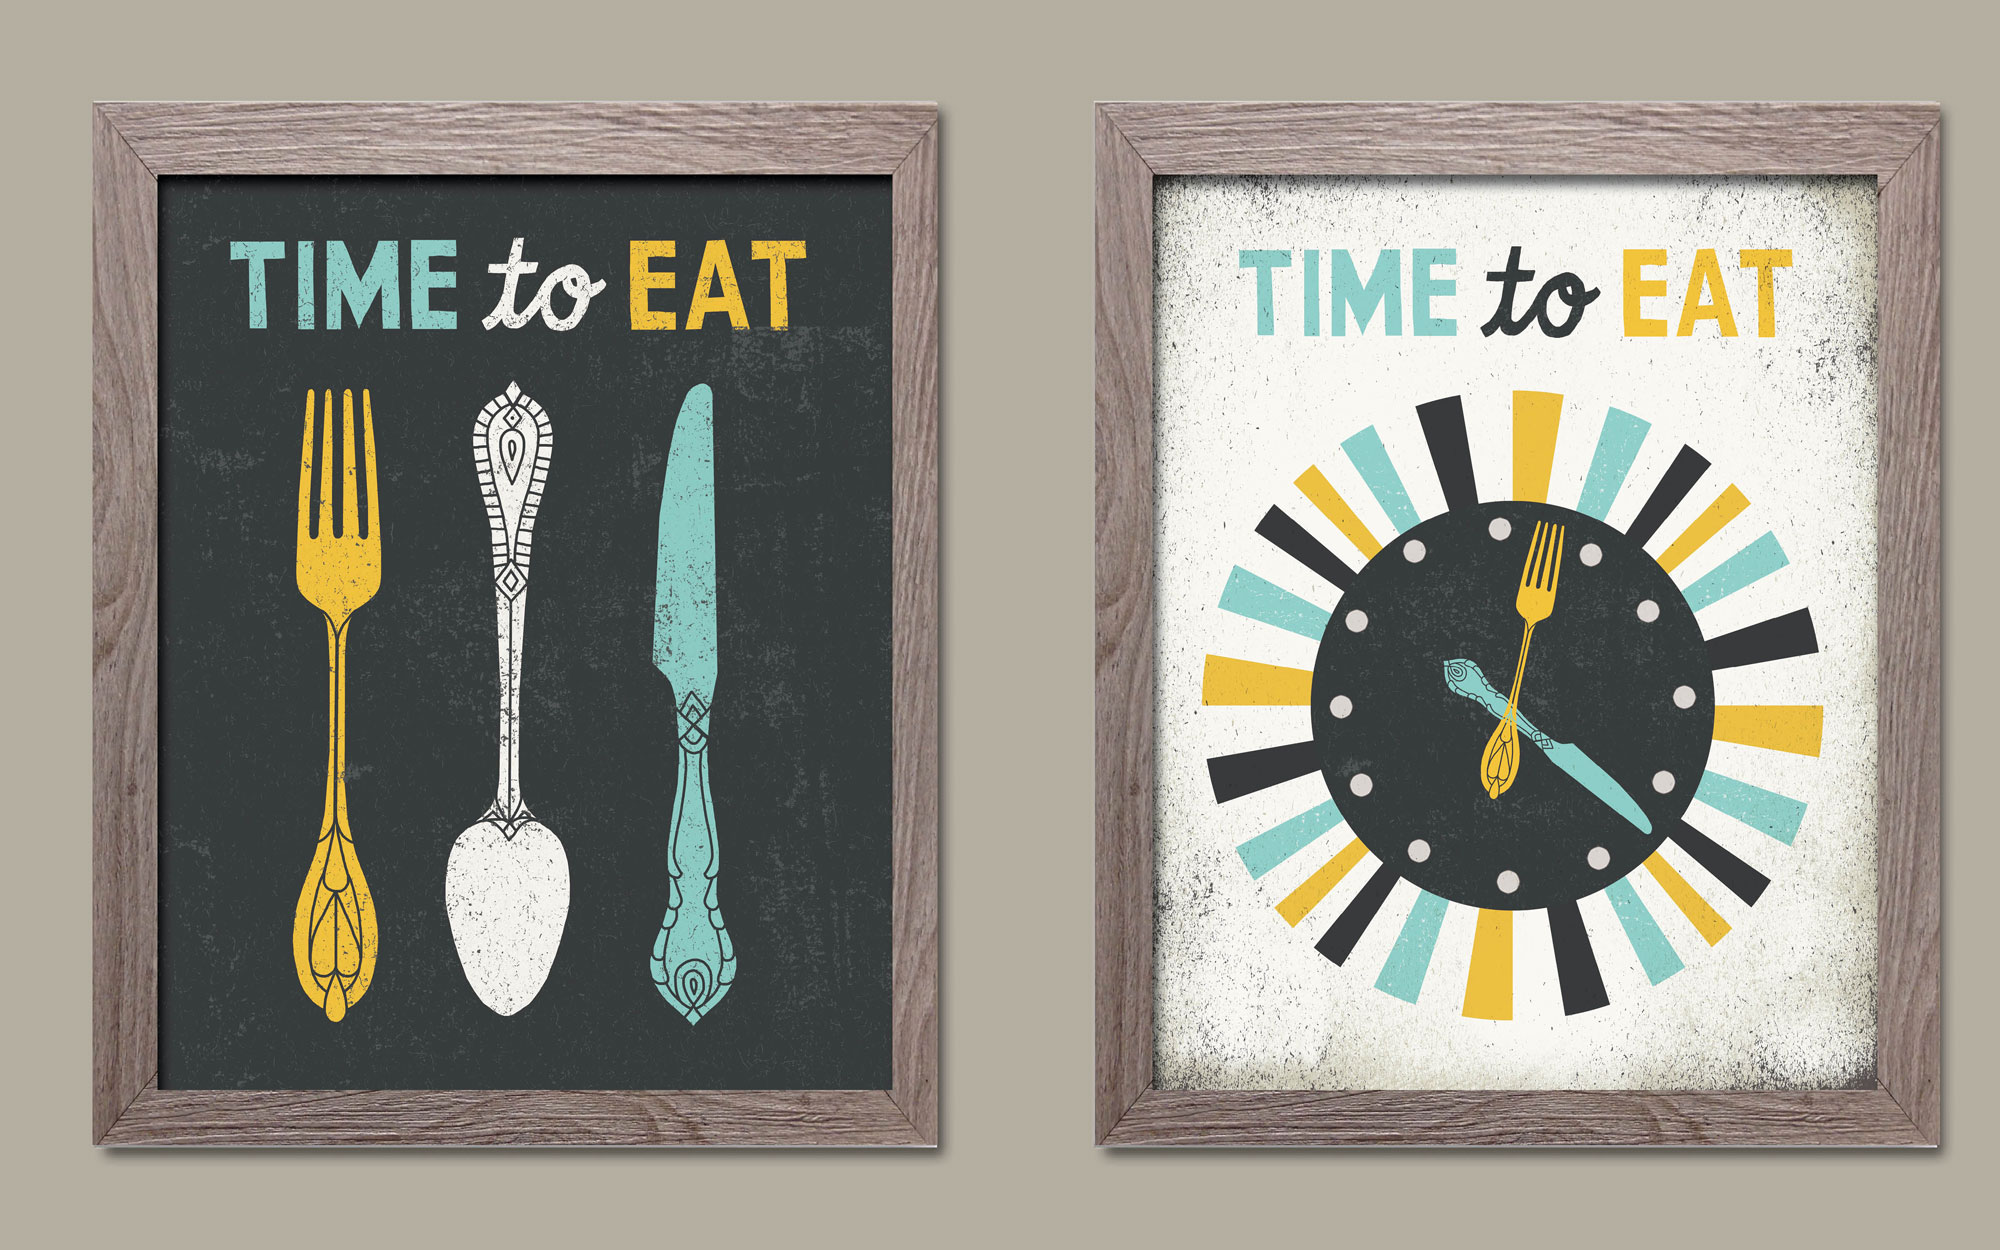 Adorable Grey Teal And Yellow Time To Eat Clock Fork Spoon Knife Set By Michael Mullan Kitchen Decor Two 11x14in Distressed Framed Prints Ready Hang Walmart Com